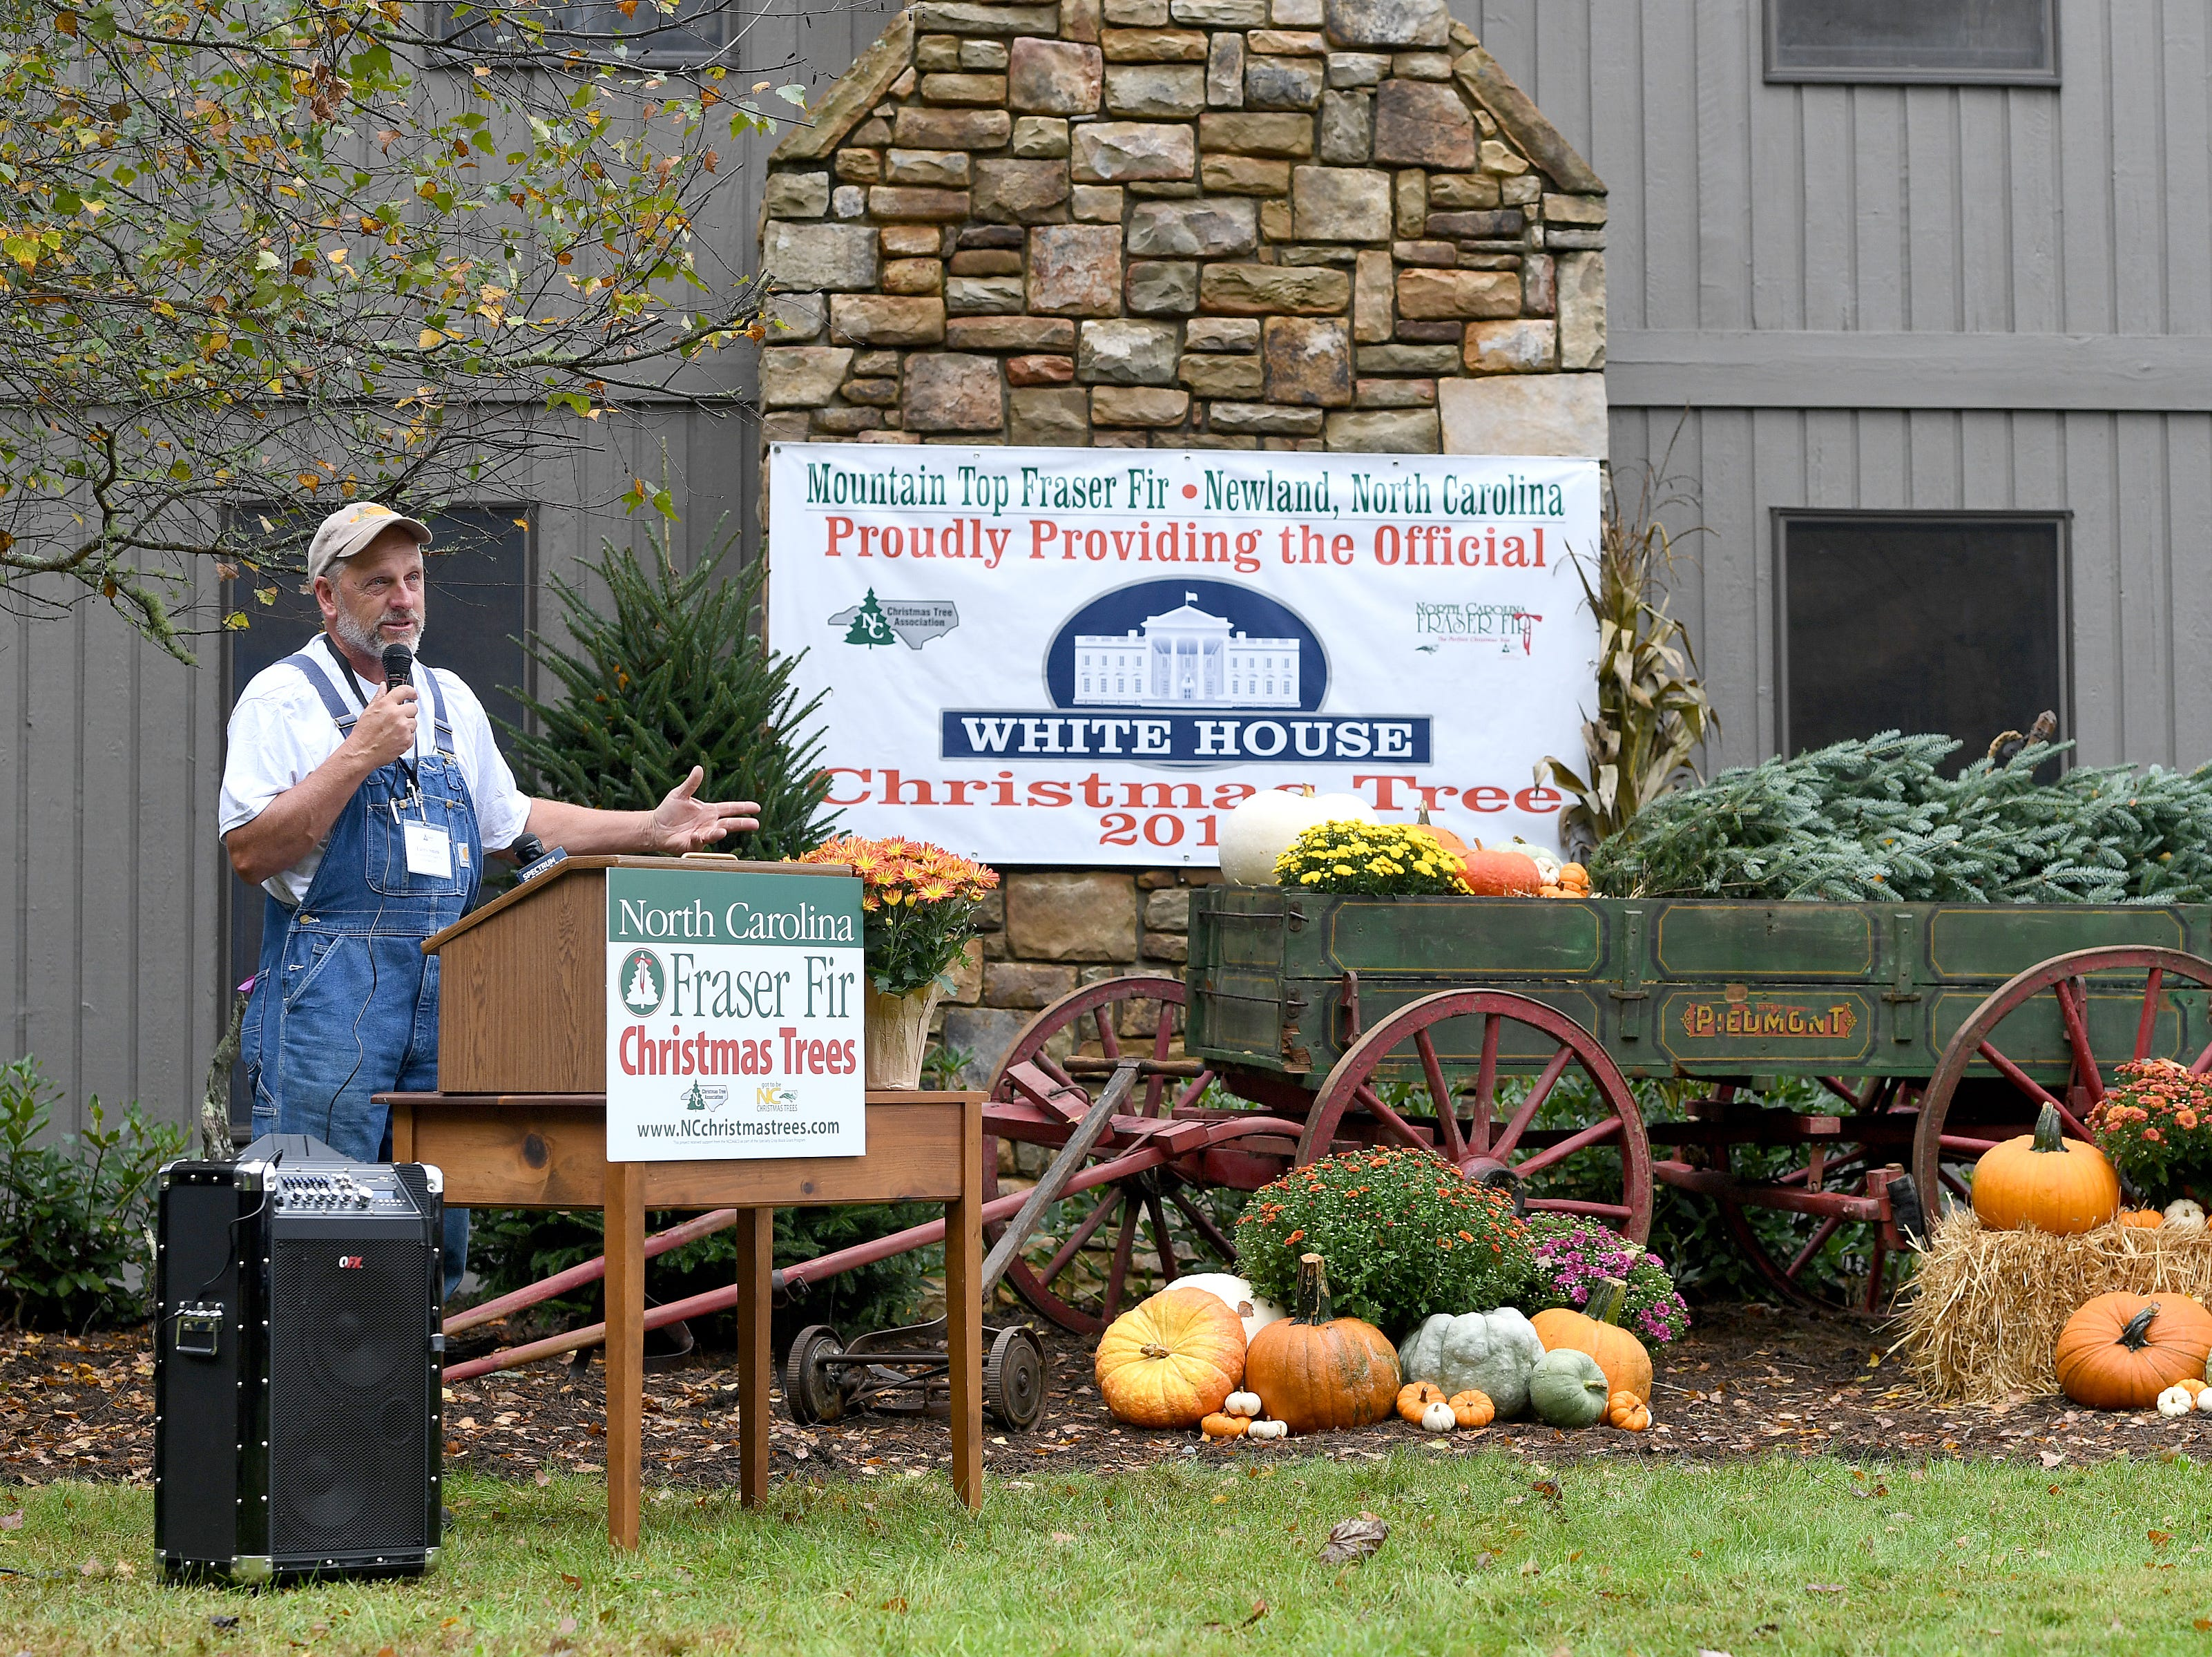 Avery County Christmas tree grower Larry Smith addresses the crowd during an event at his farm in Newland on Sept. 24, 2018. Smith was named the Grand Champion in the National Christmas Tree Association's Christmas tree contest and with the title comes the honor of providing a tree to the White House to be displayed in the Blue Room during the Christmas season.